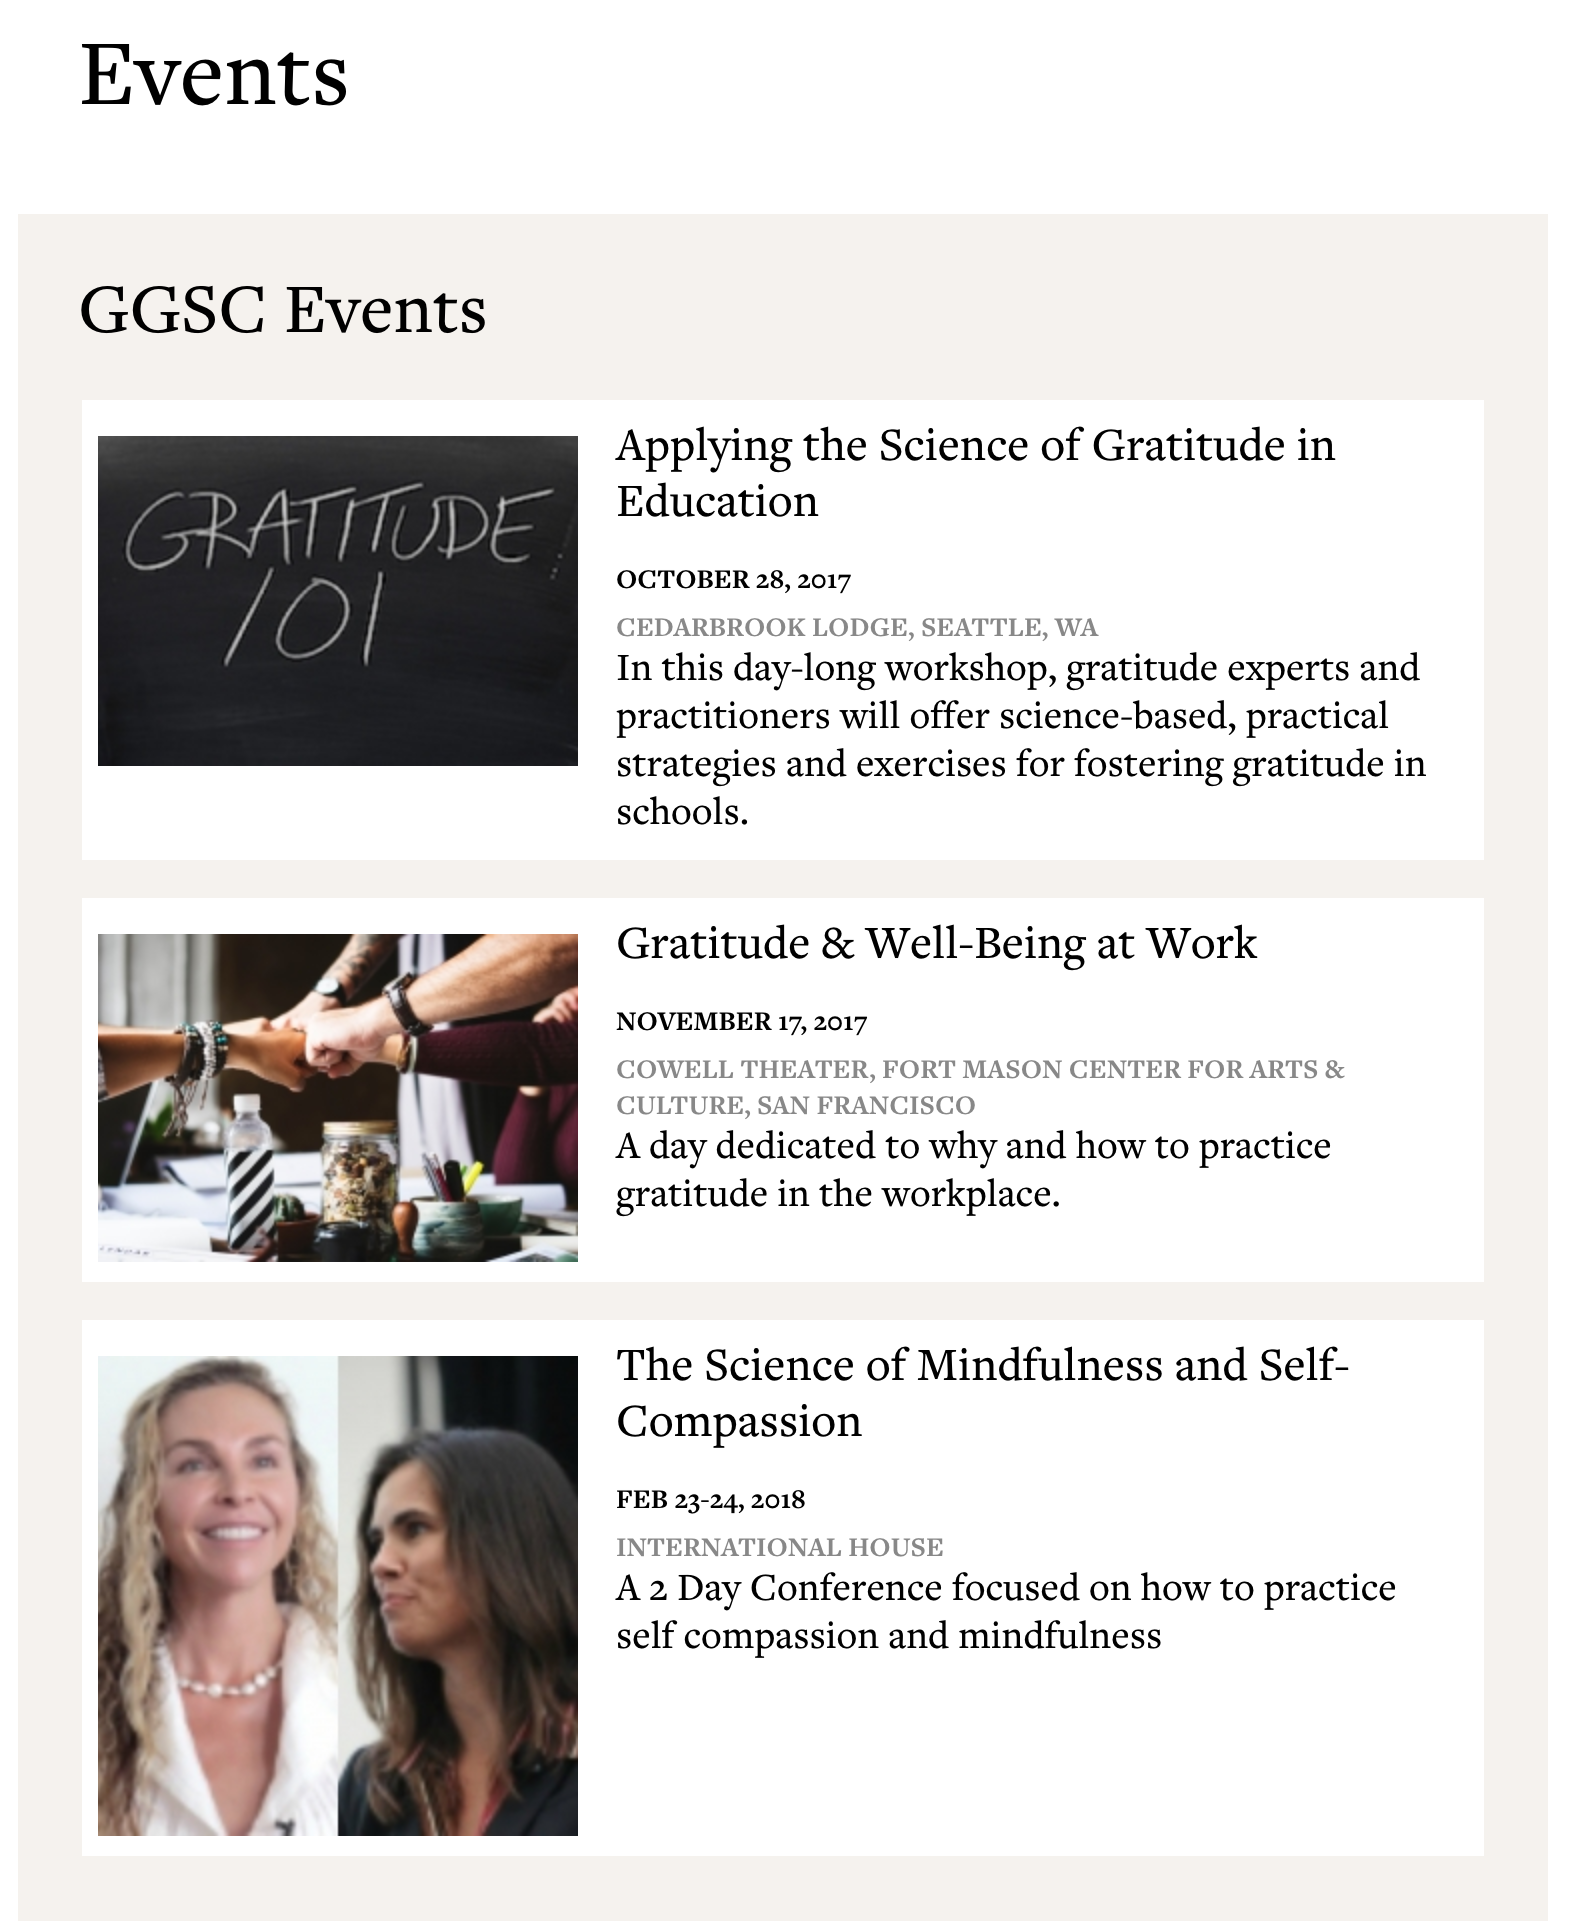 GGSC Events screenshot